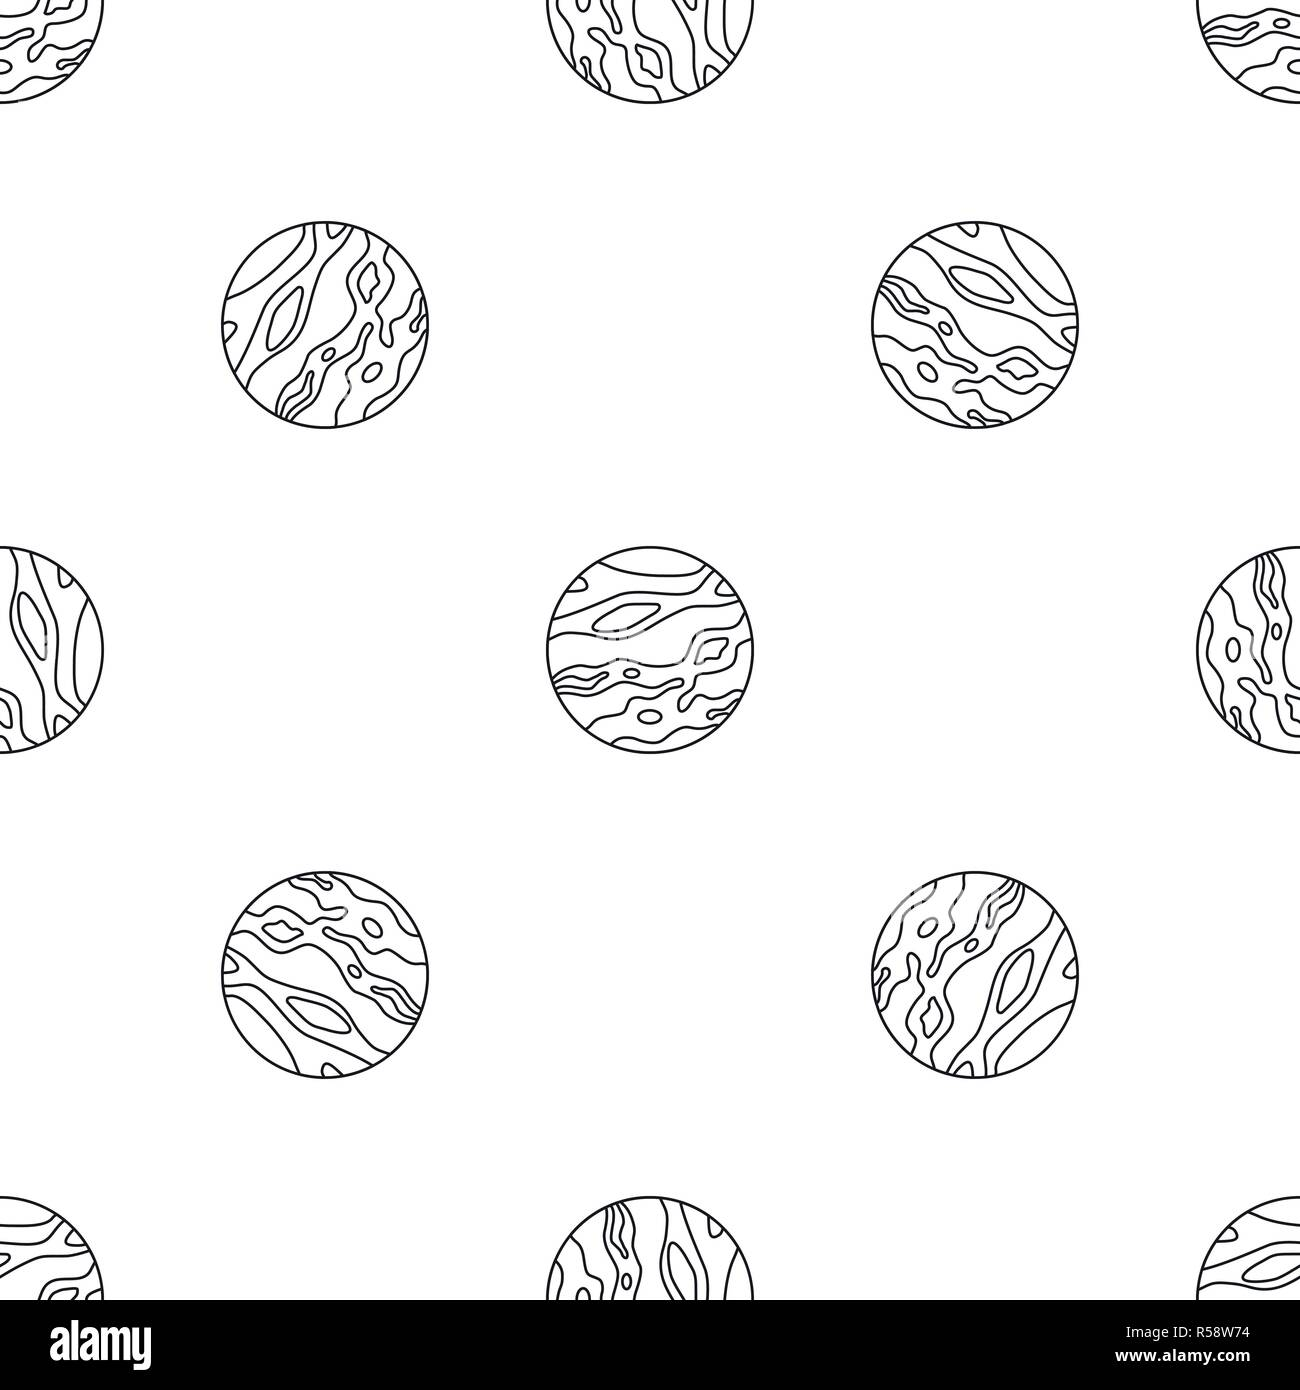 Venus planet pattern seamless vector repeat geometric for any web design - Stock Image